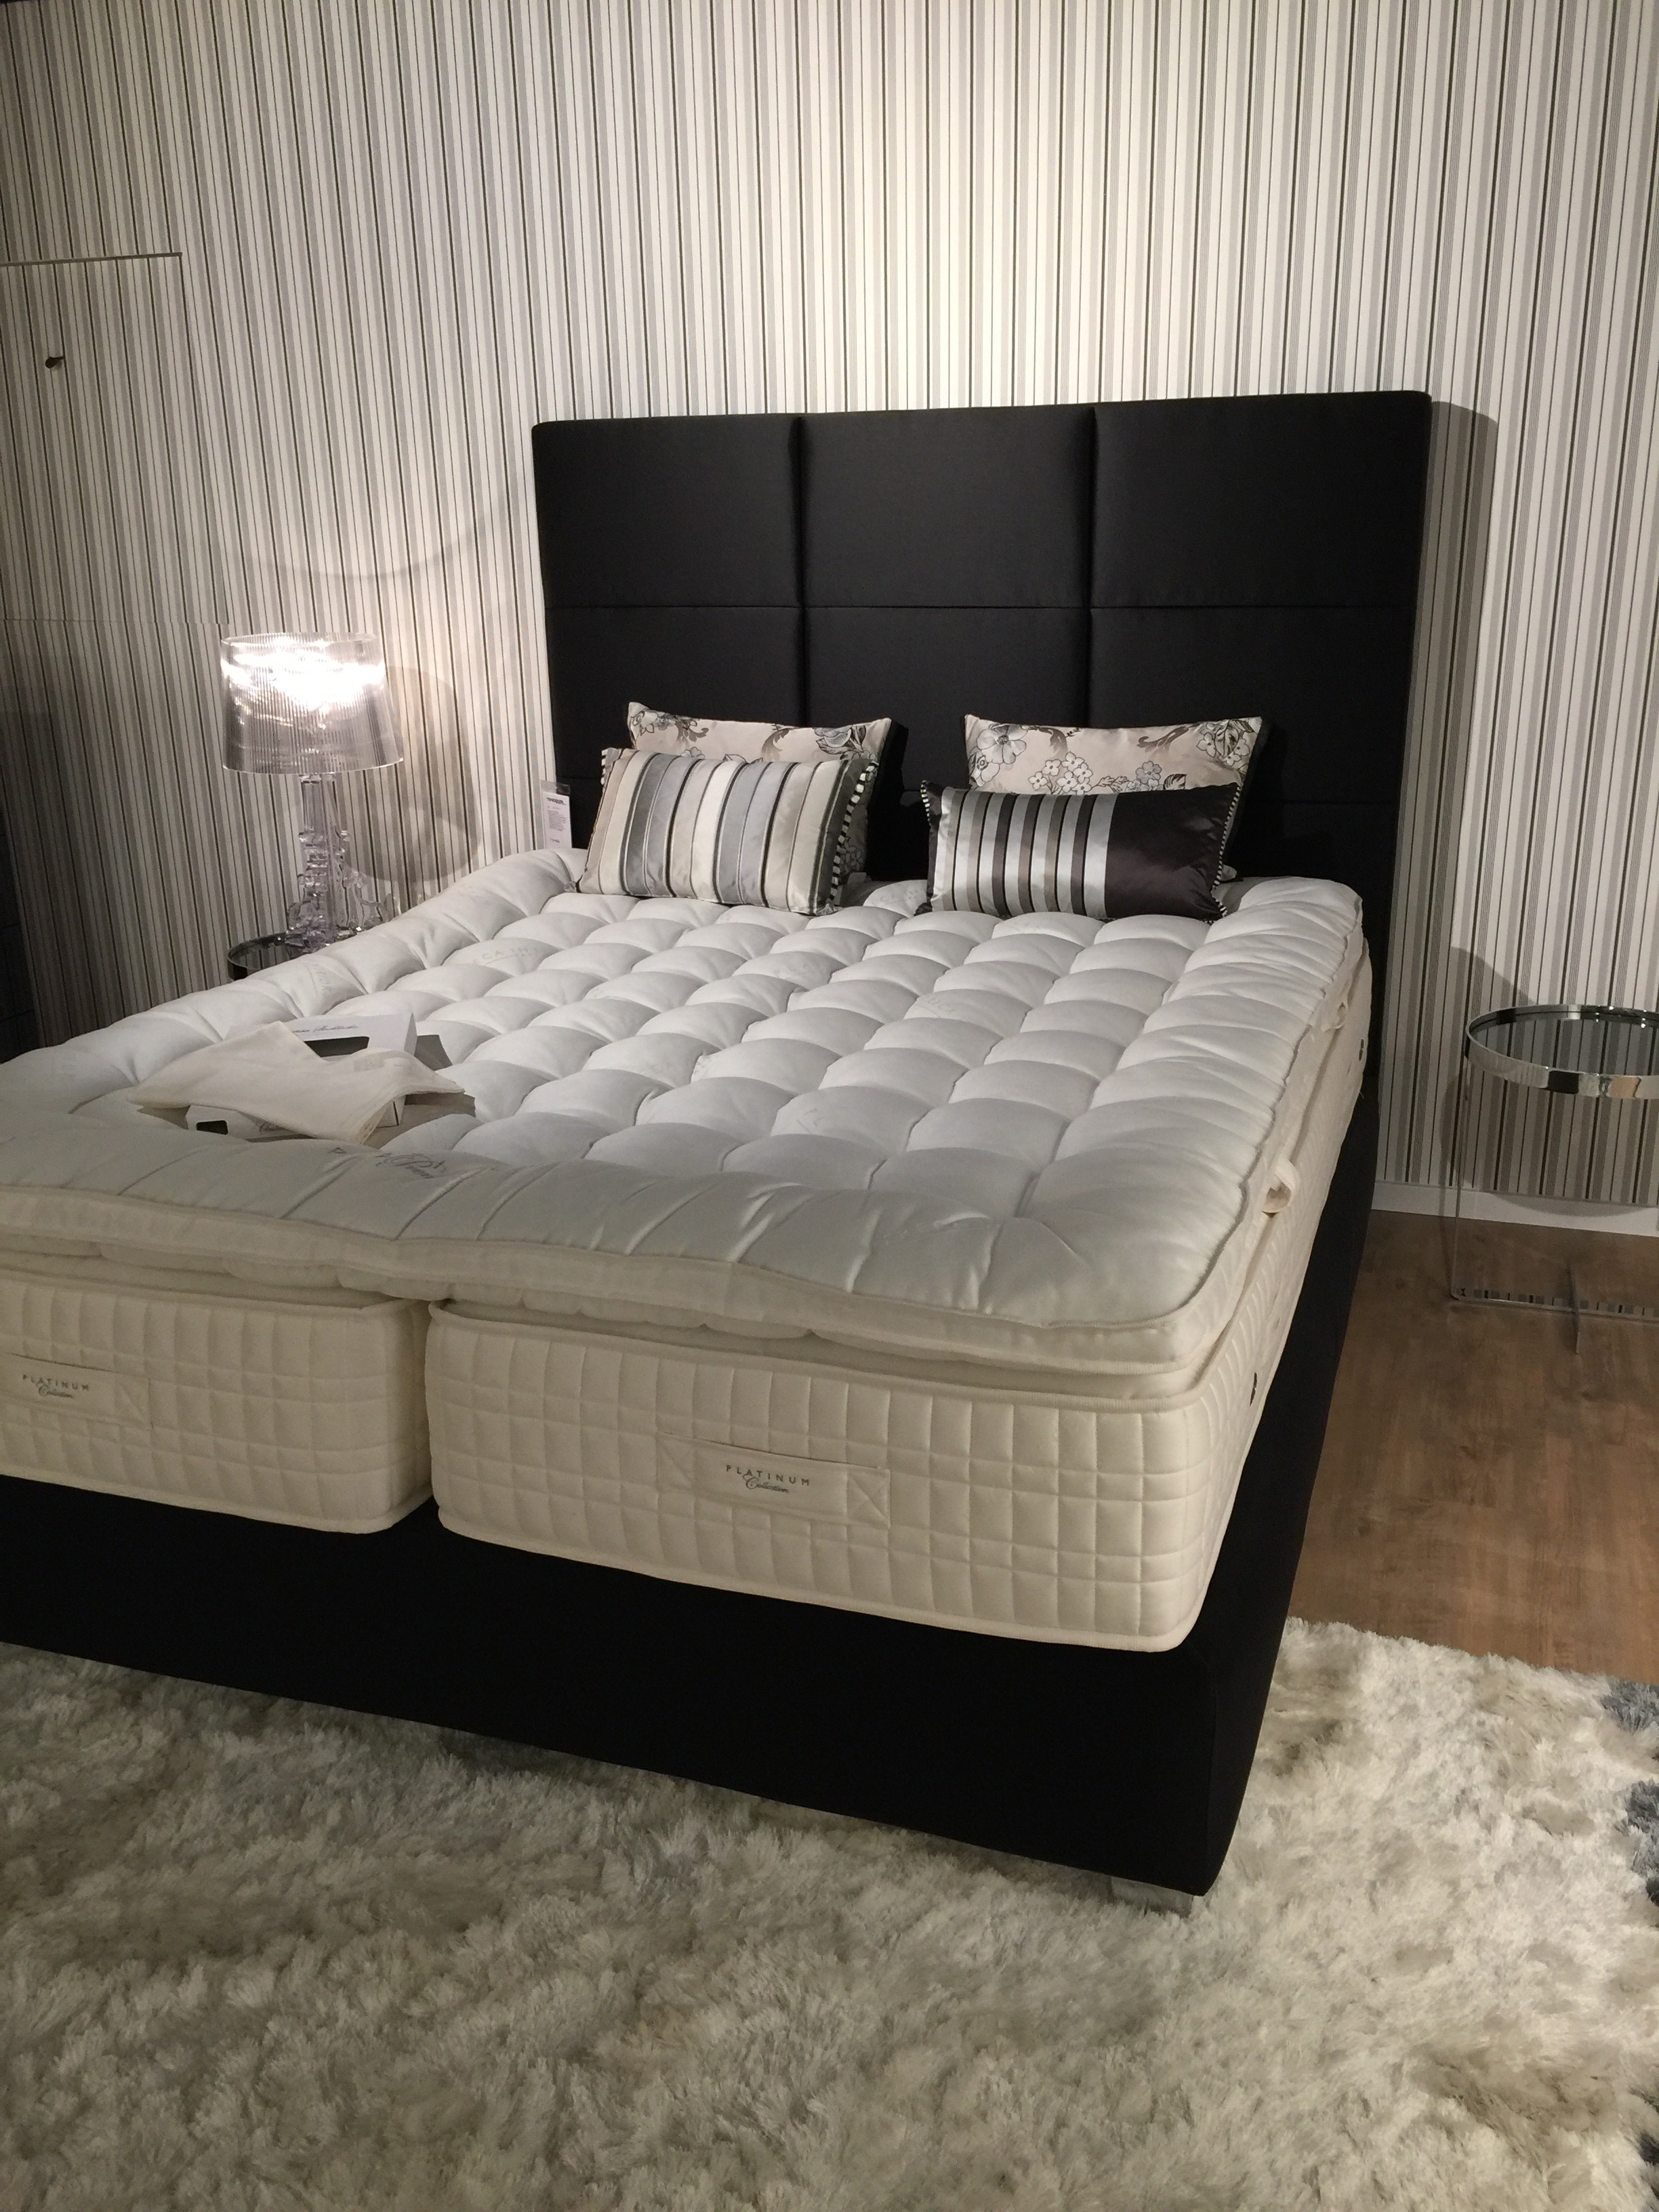 platinum treca tendenza. Black Bedroom Furniture Sets. Home Design Ideas